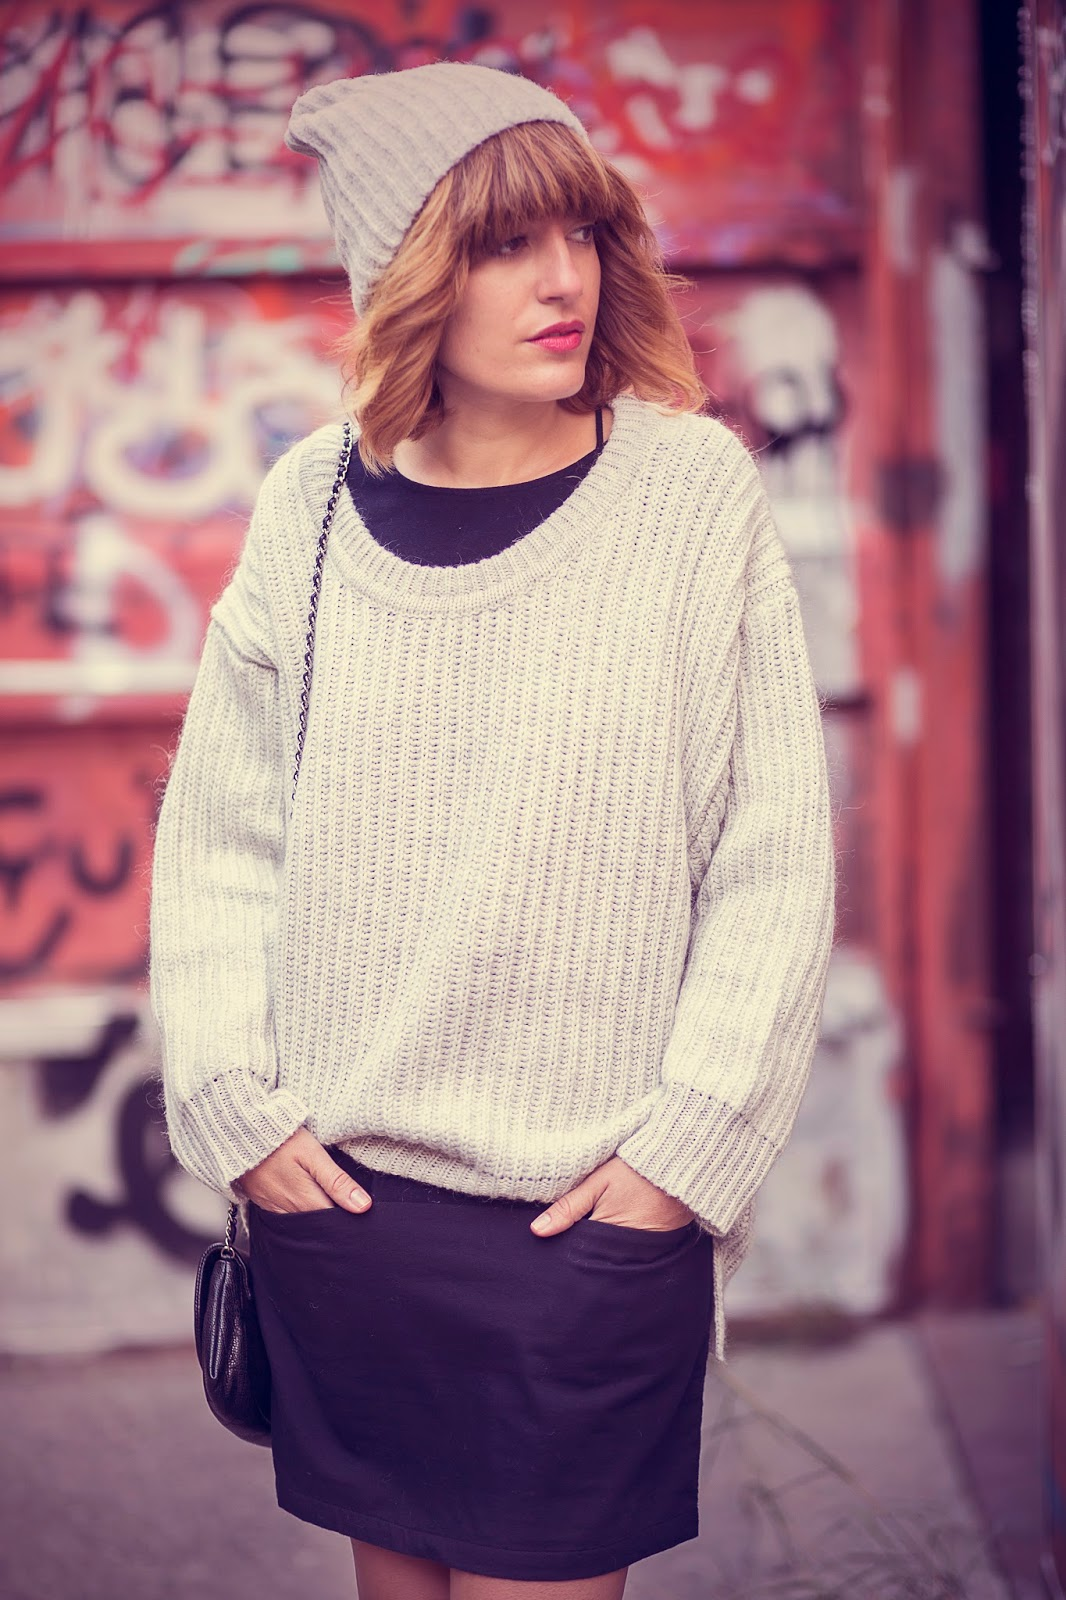 chain-bag_oversized-grey-sweater_berlin-fashion-blog